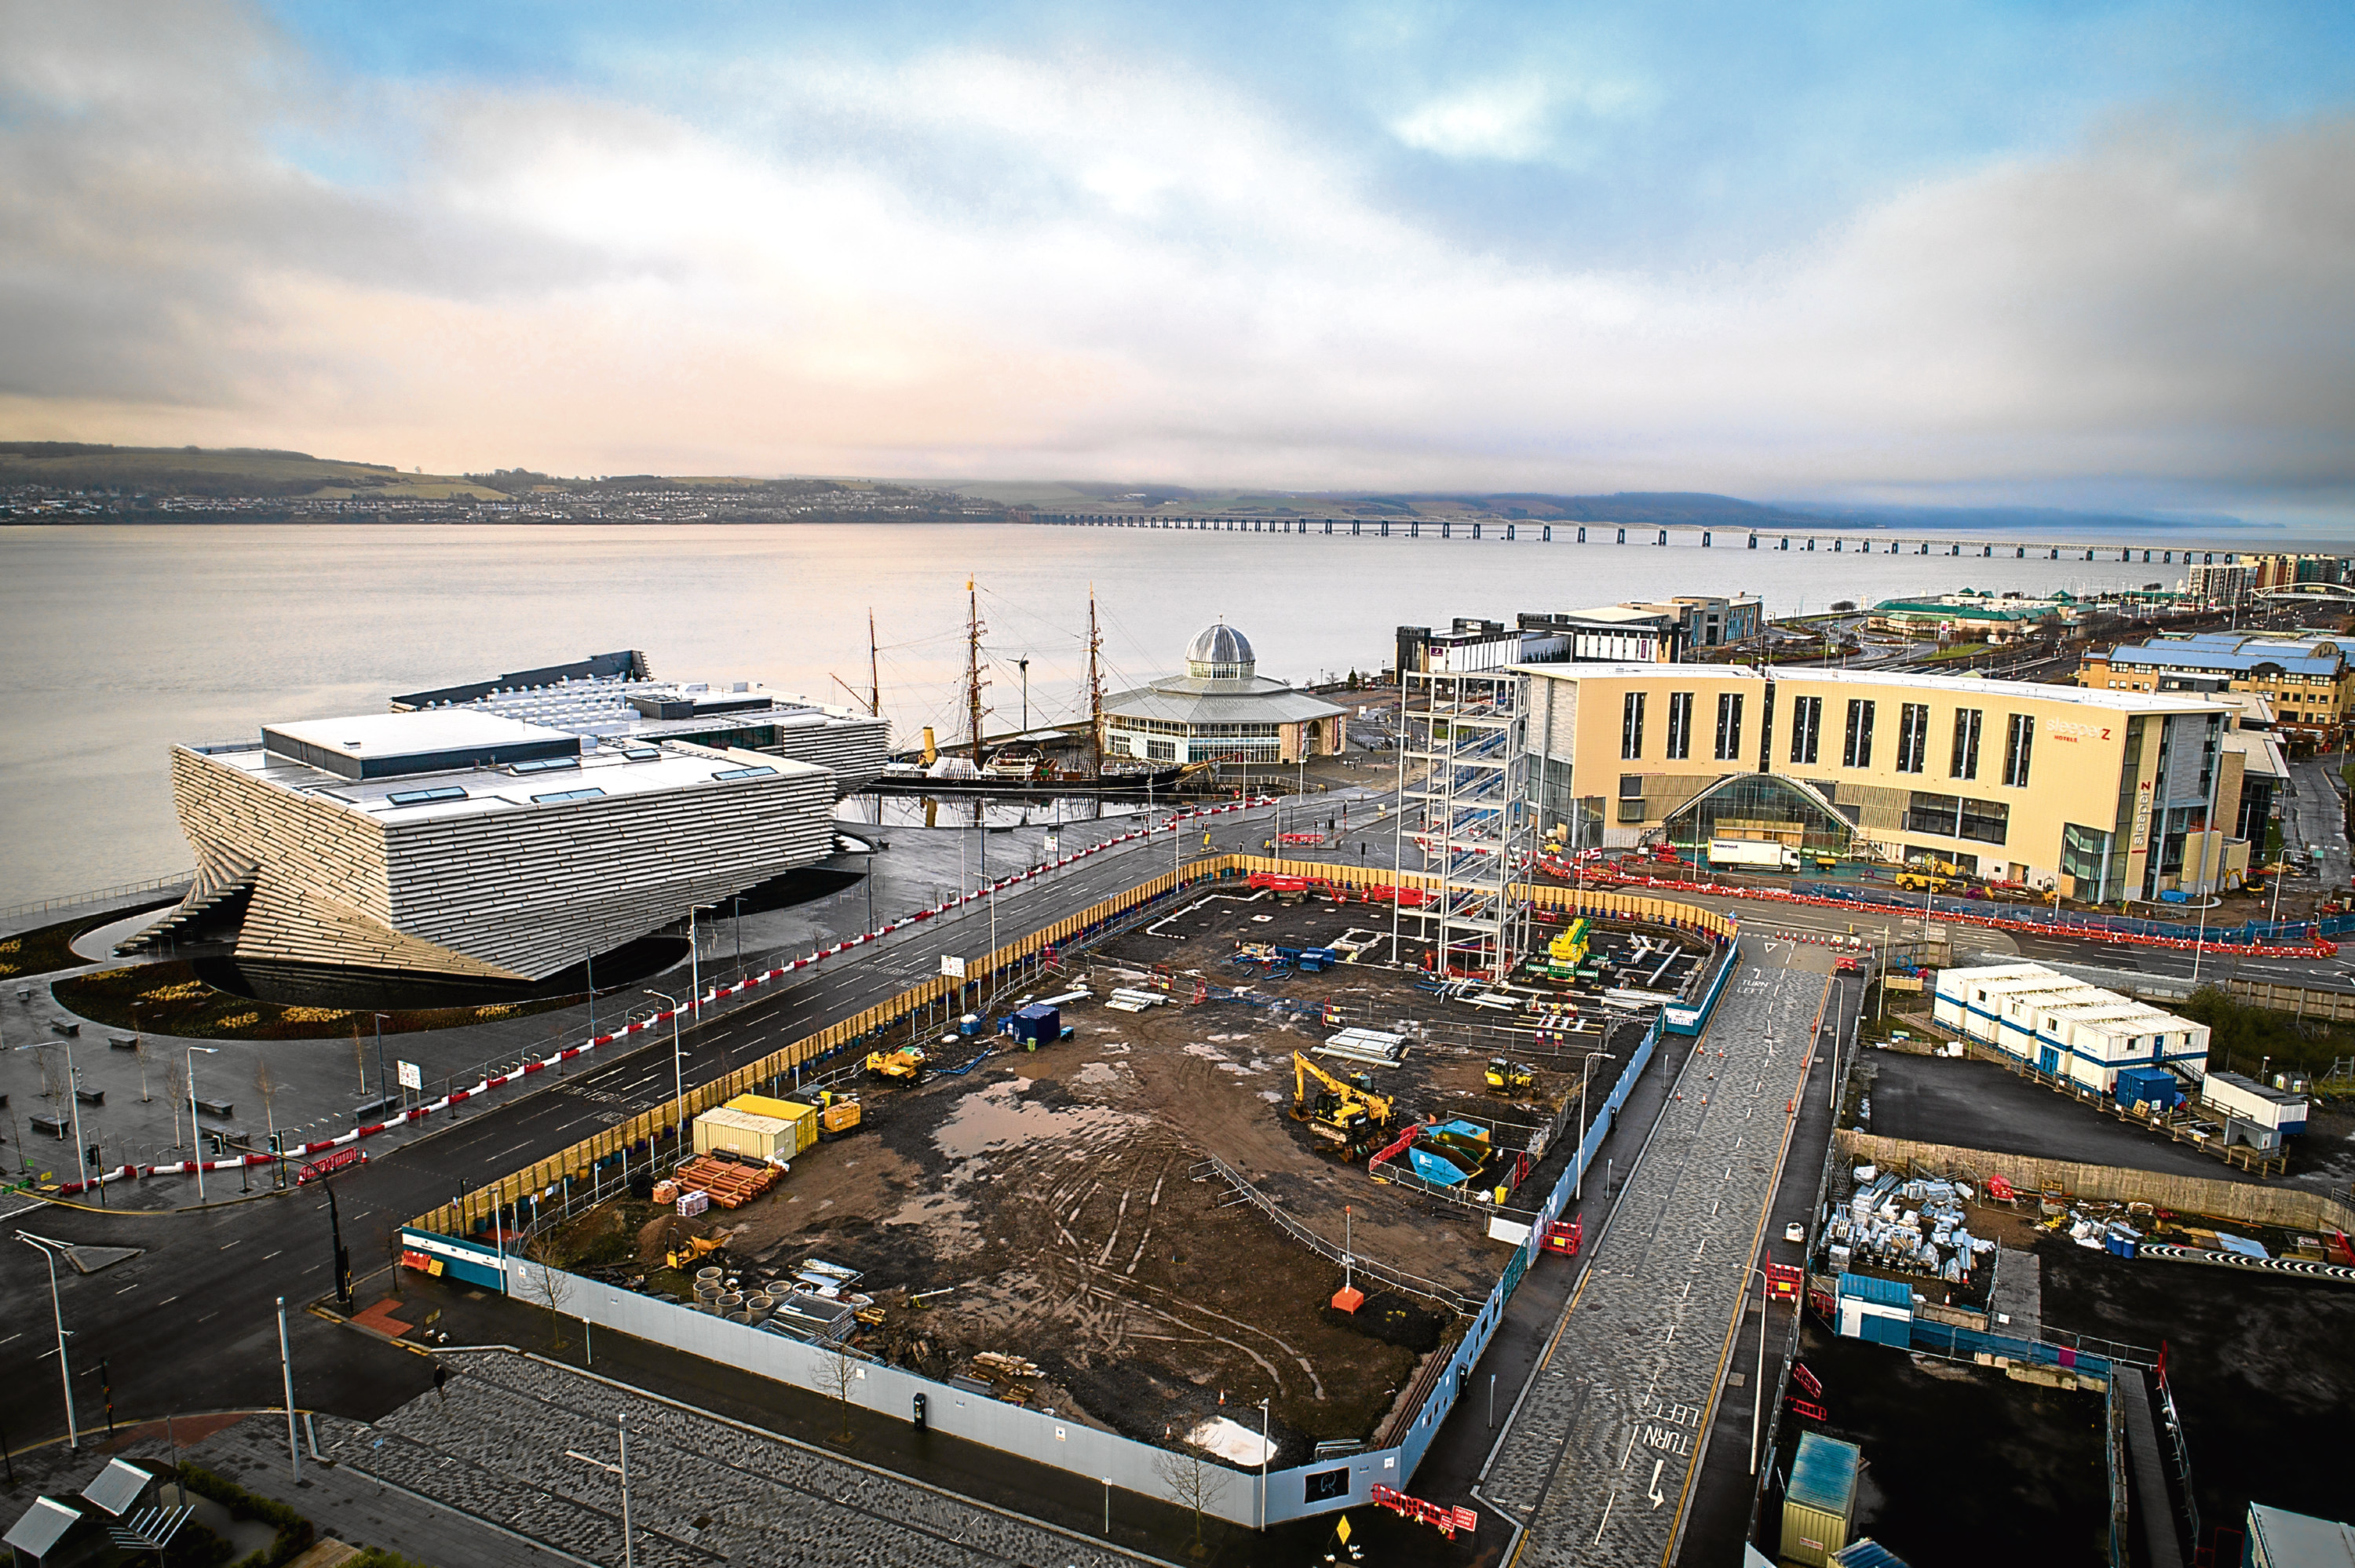 New images show the extent of the latest development at Dundee Waterfront